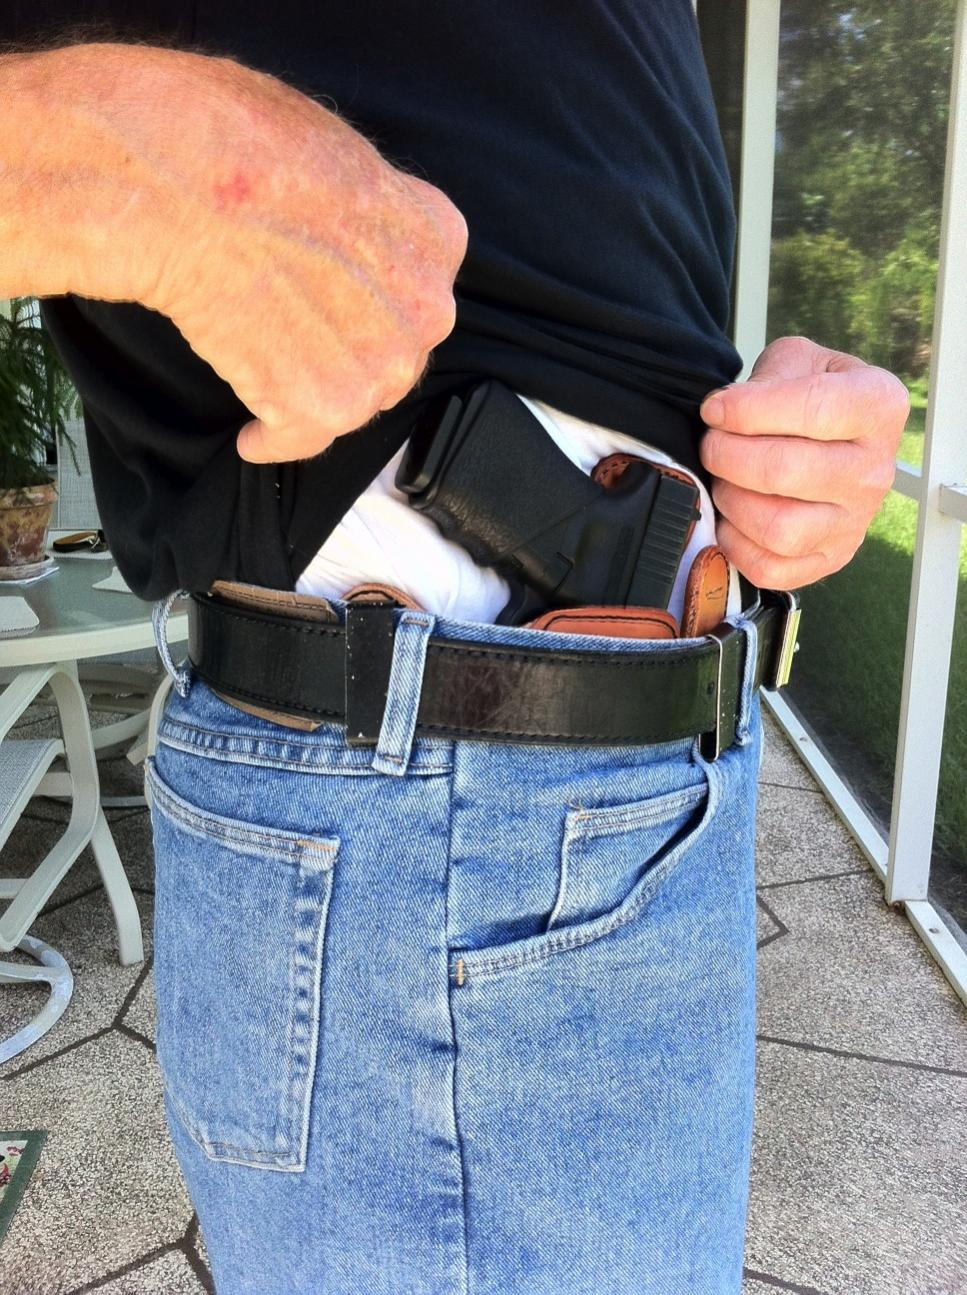 AIWB Holsters that pull grip closer to the body-image-1.jpg